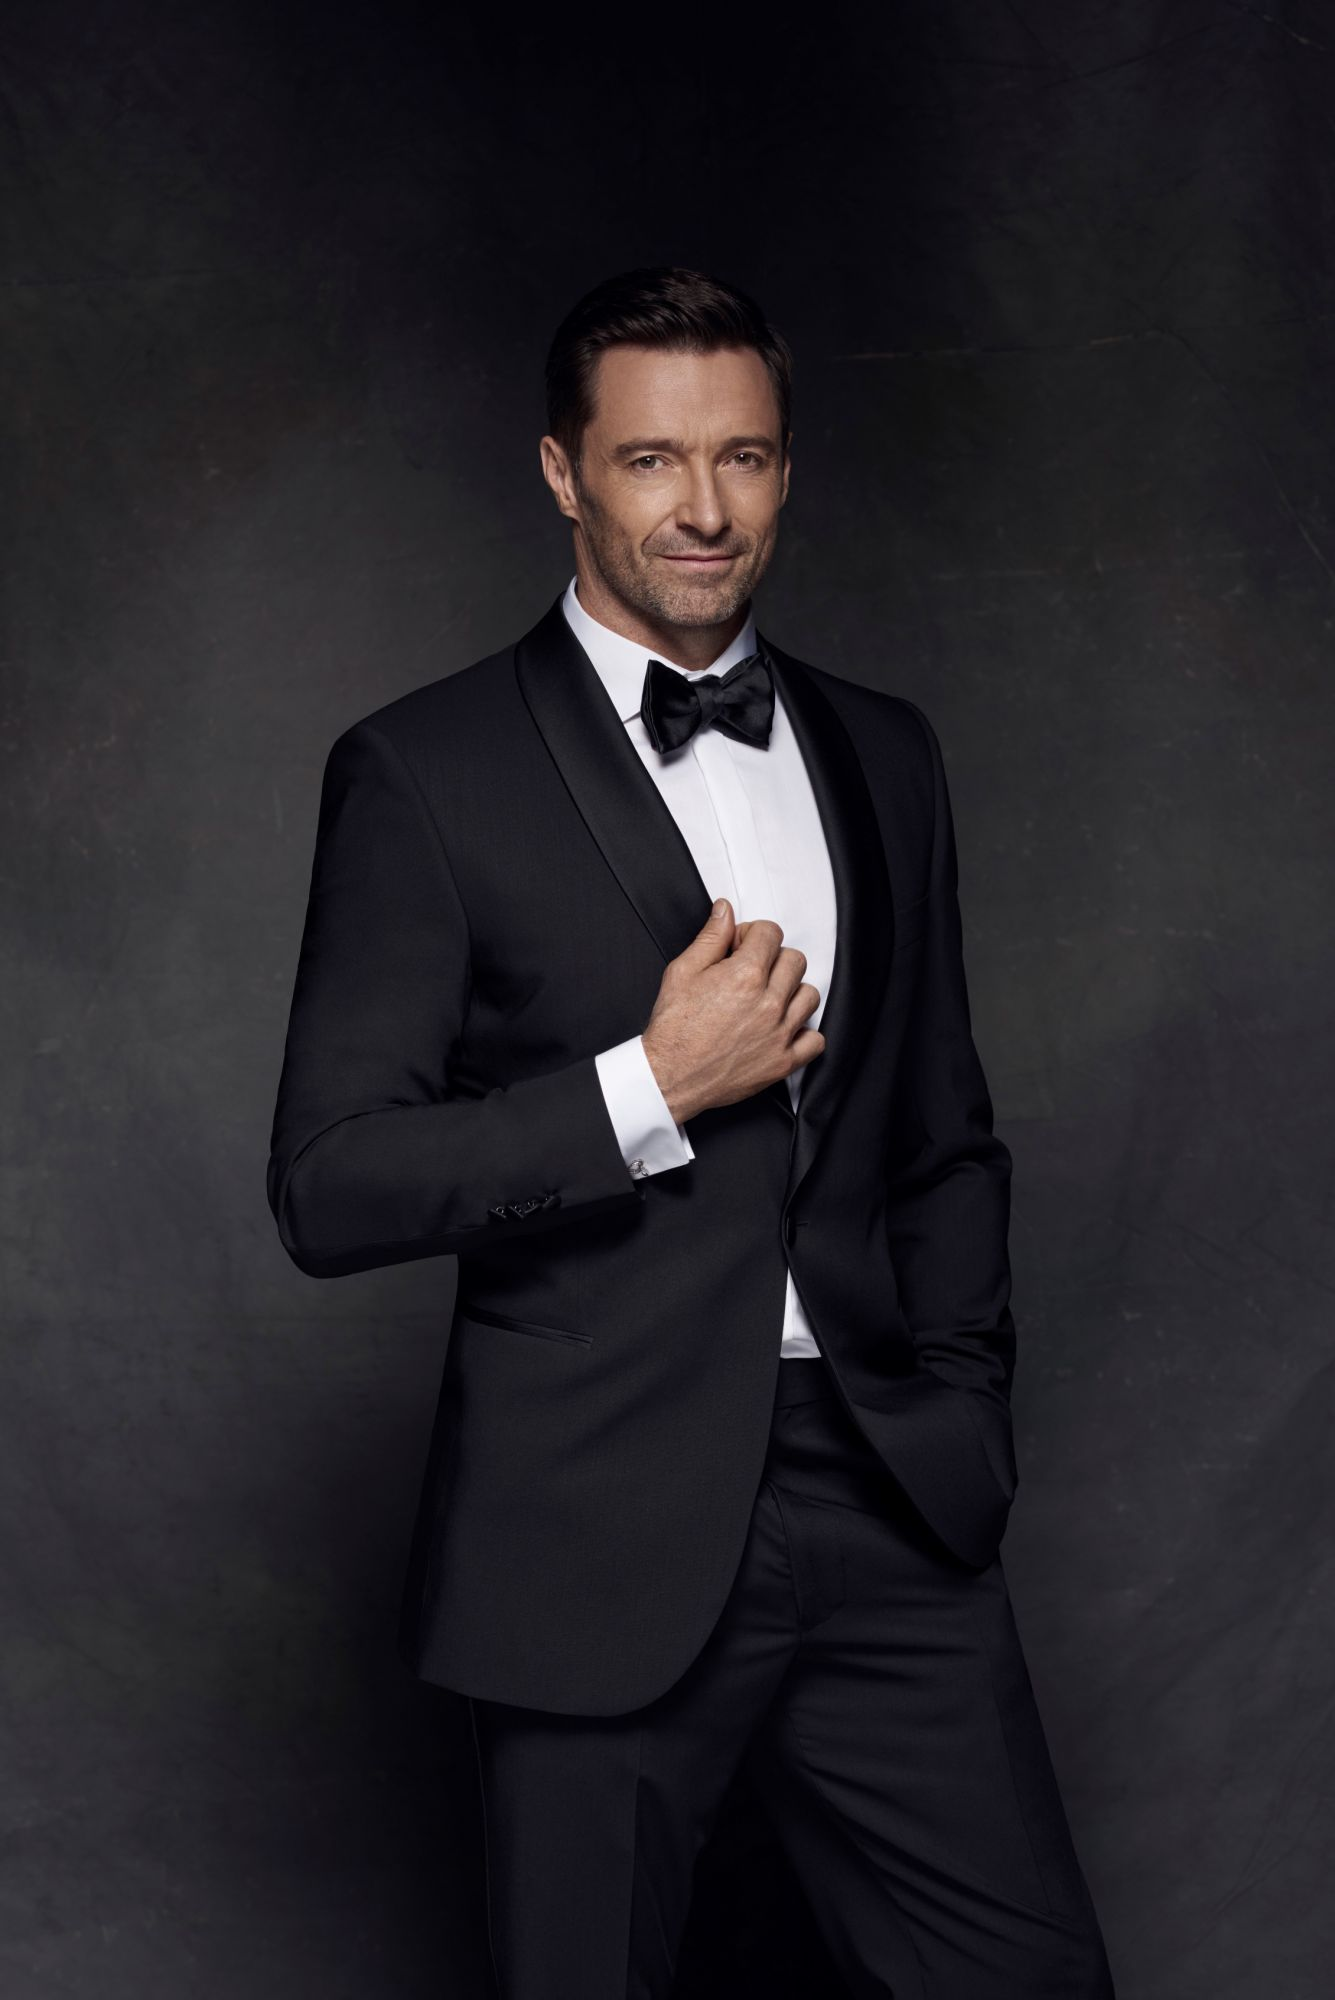 Hugh Jackman On The Gr...